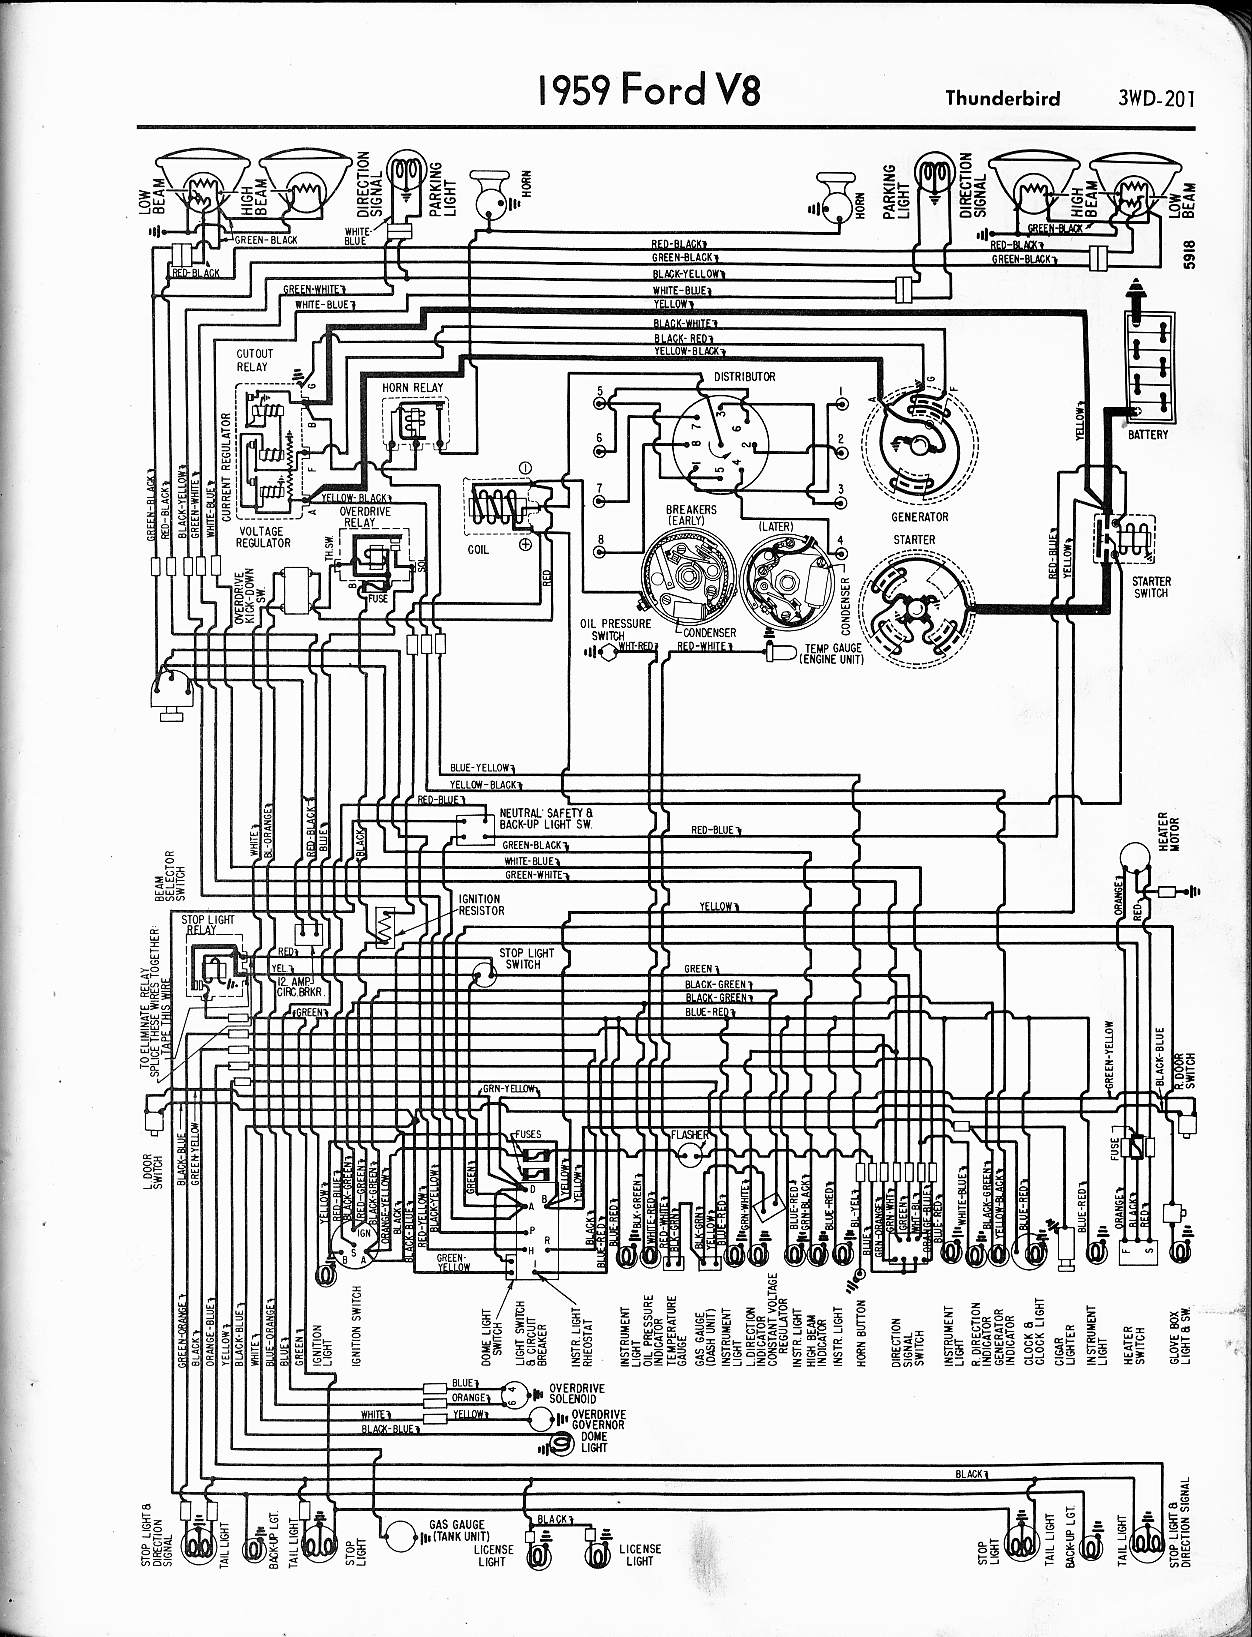 MWire5765 201 57 65 ford wiring diagrams 1959 ford f100 wiring diagram at bayanpartner.co